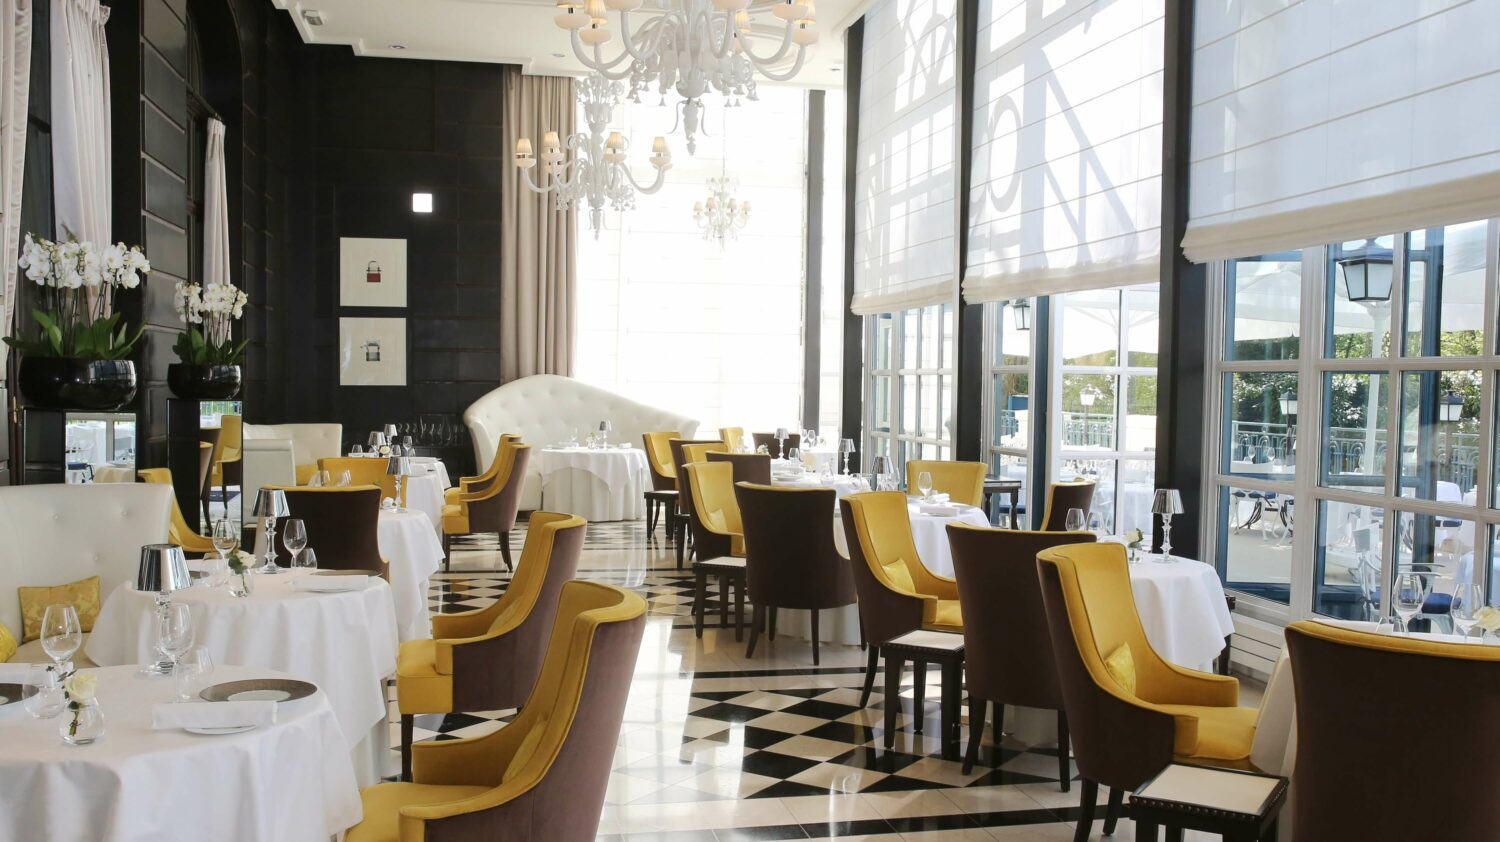 gordon ramsay restaurant-waldorf astoria versailles - trianon palace france